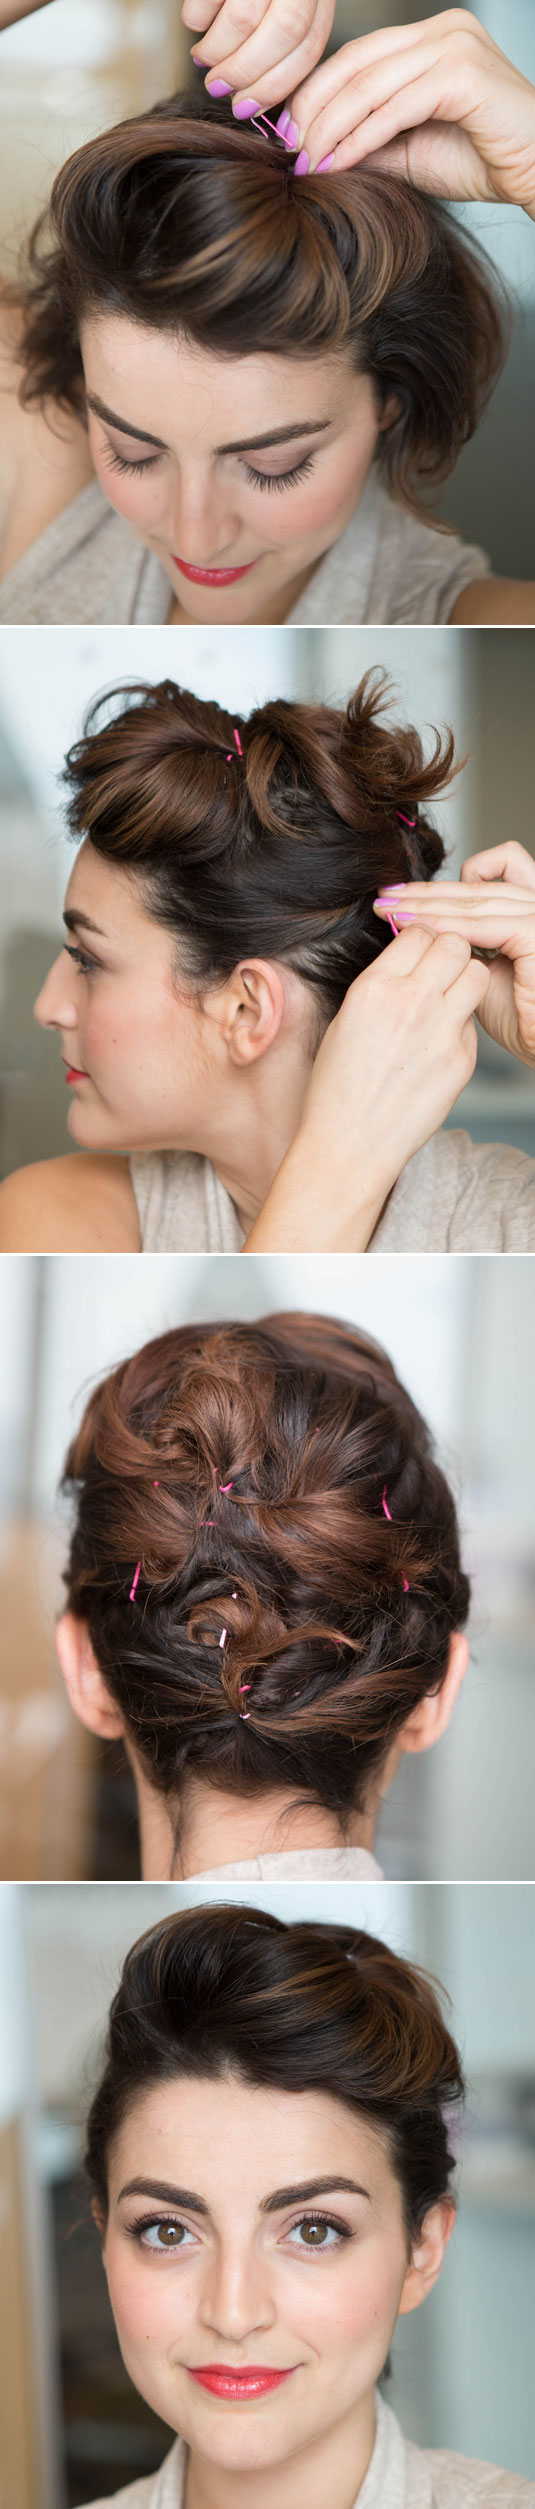 15 Best Hairstyles For Short Hair   Beauty, Fashion ...